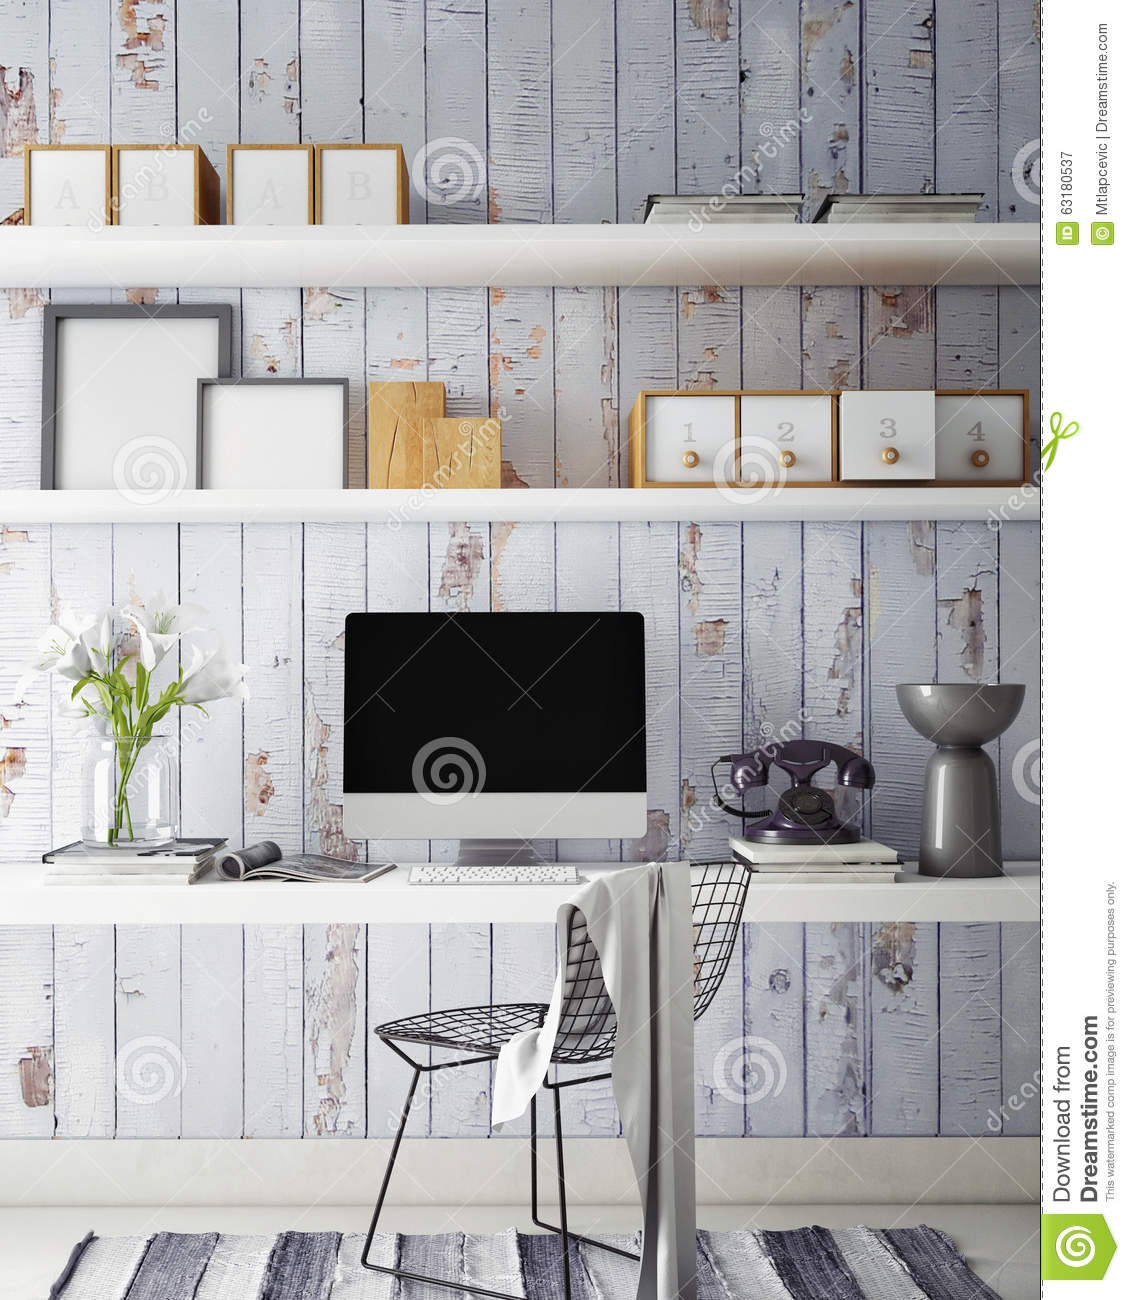 3d illustration of modern computer template workspace mock up stock photo image 63180537. Black Bedroom Furniture Sets. Home Design Ideas